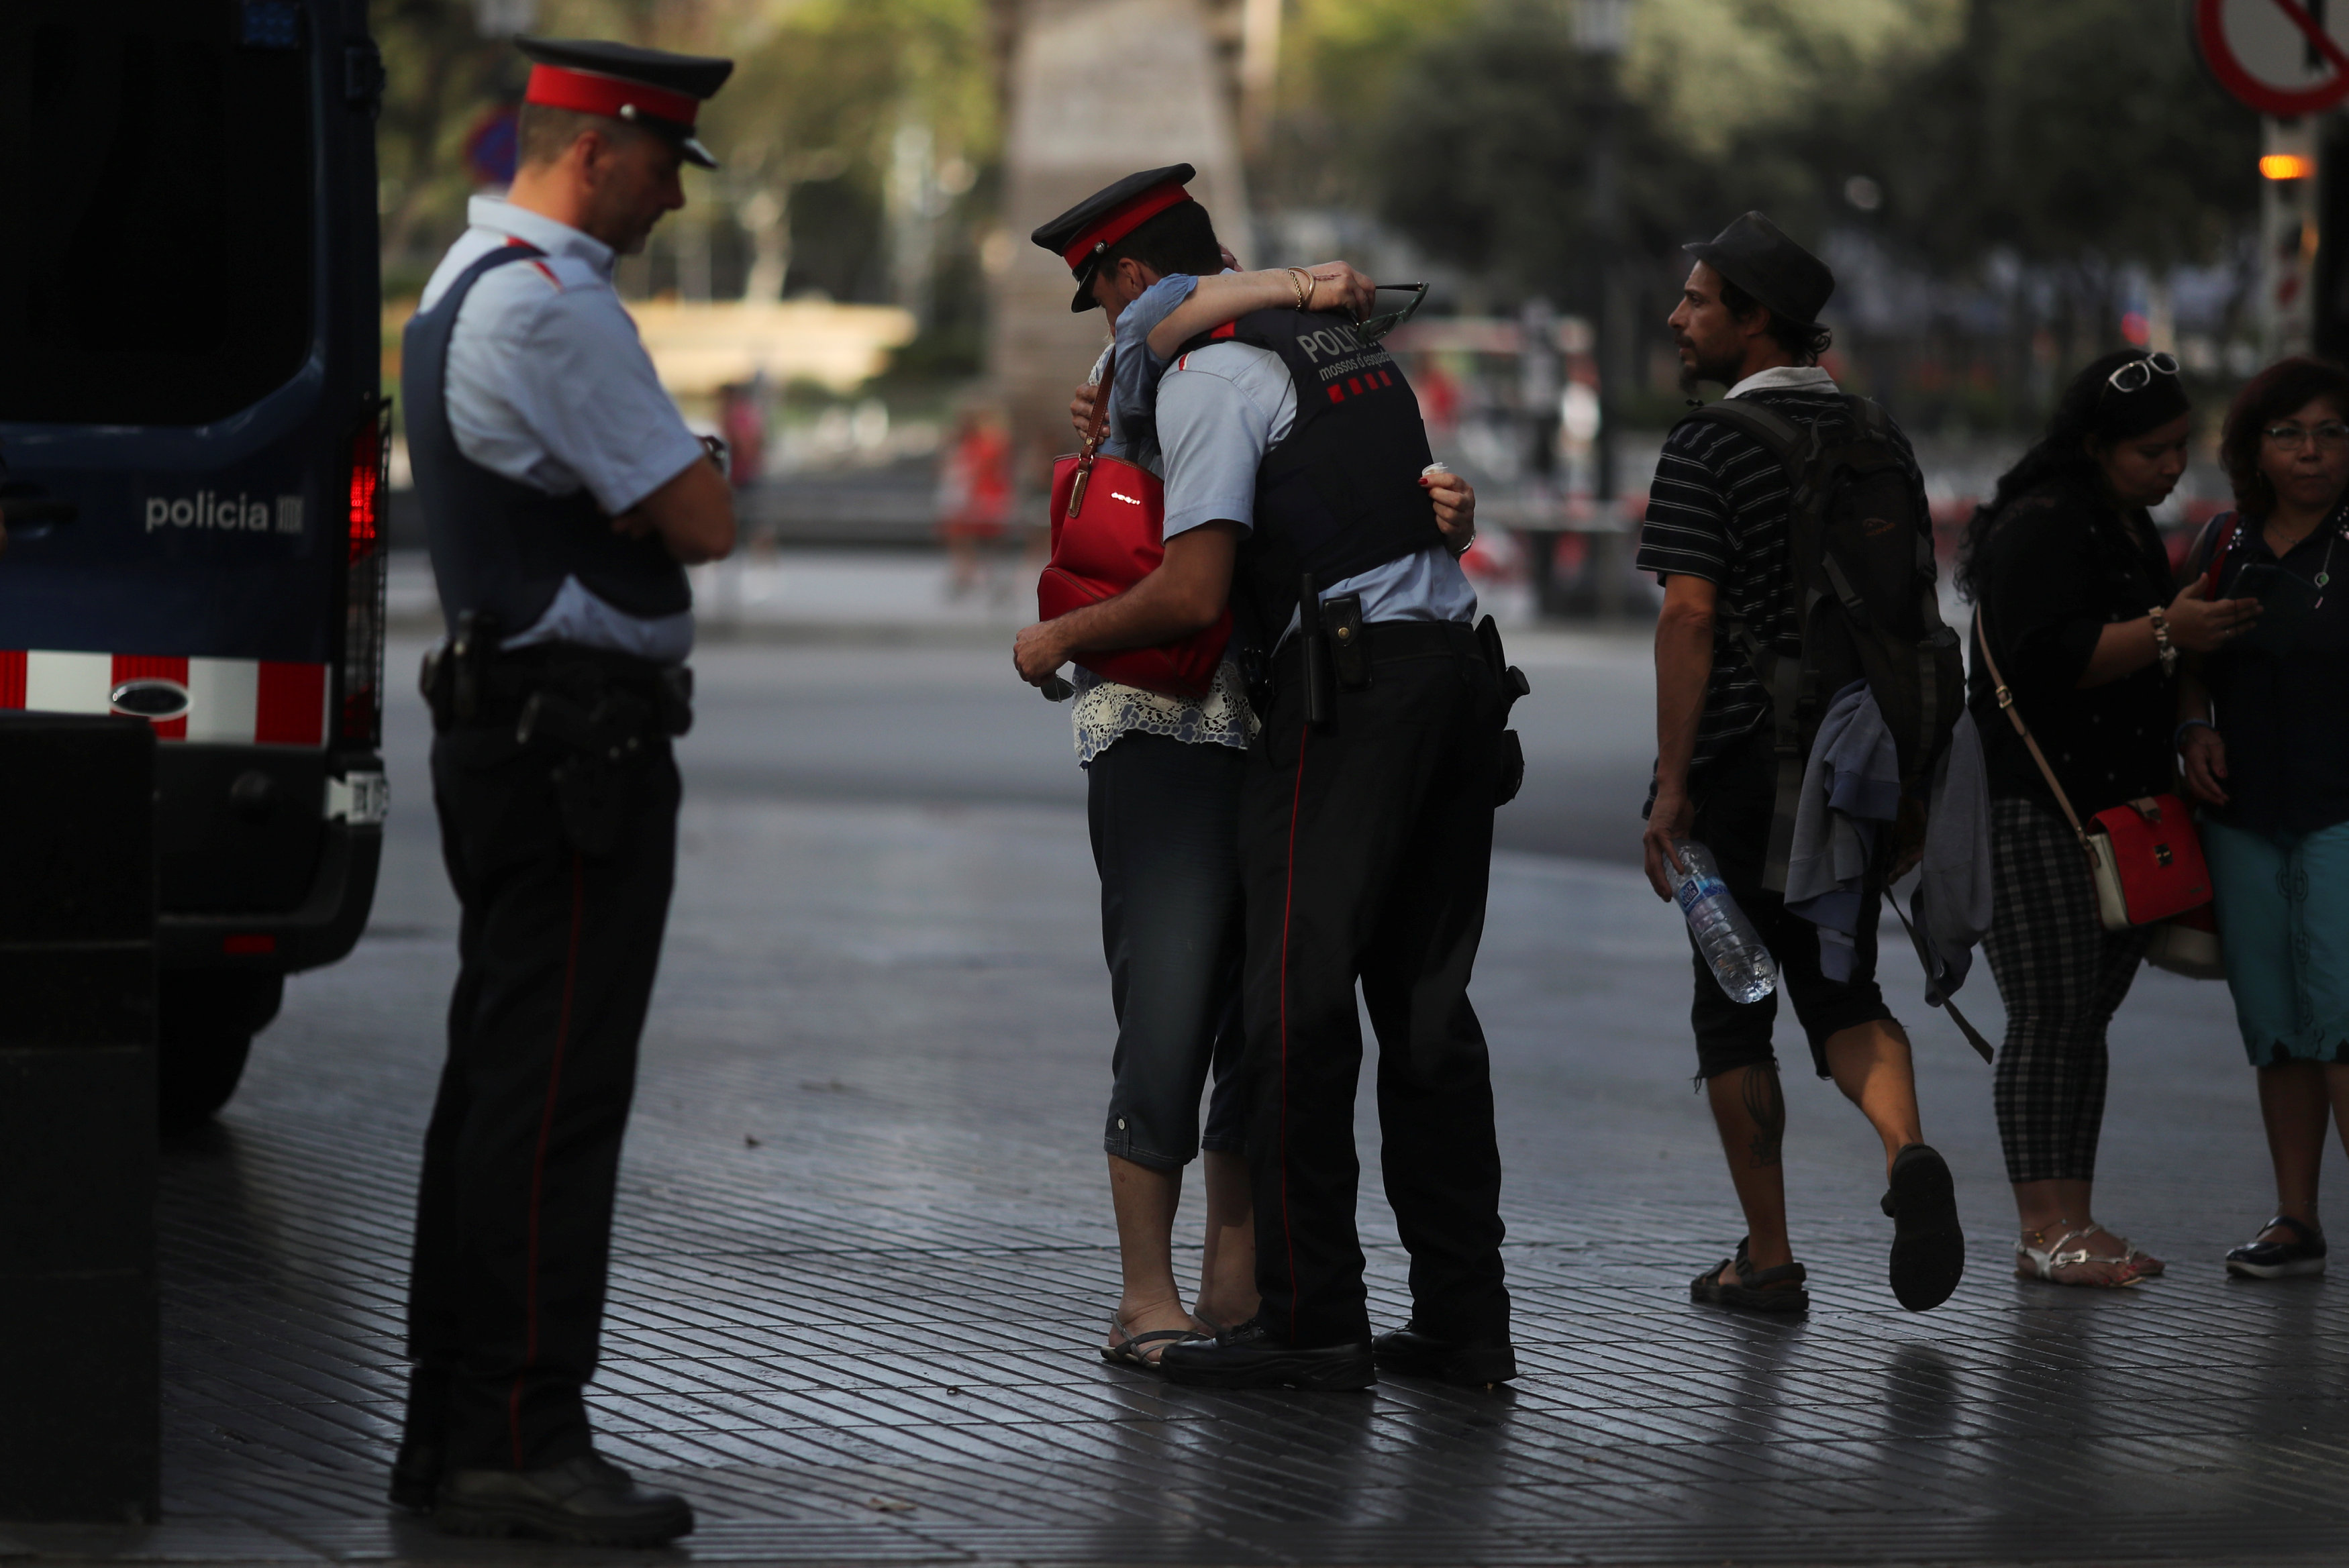 Pilar Revilla, 75, hugs a Catalan Mossos d'Esquadra officer after visiting an impromptu memorial where a van crashed into pedestrians at Las Ramblas in Barcelona, Spain on August 20, 2017. (REUTERS/Susana Vera)